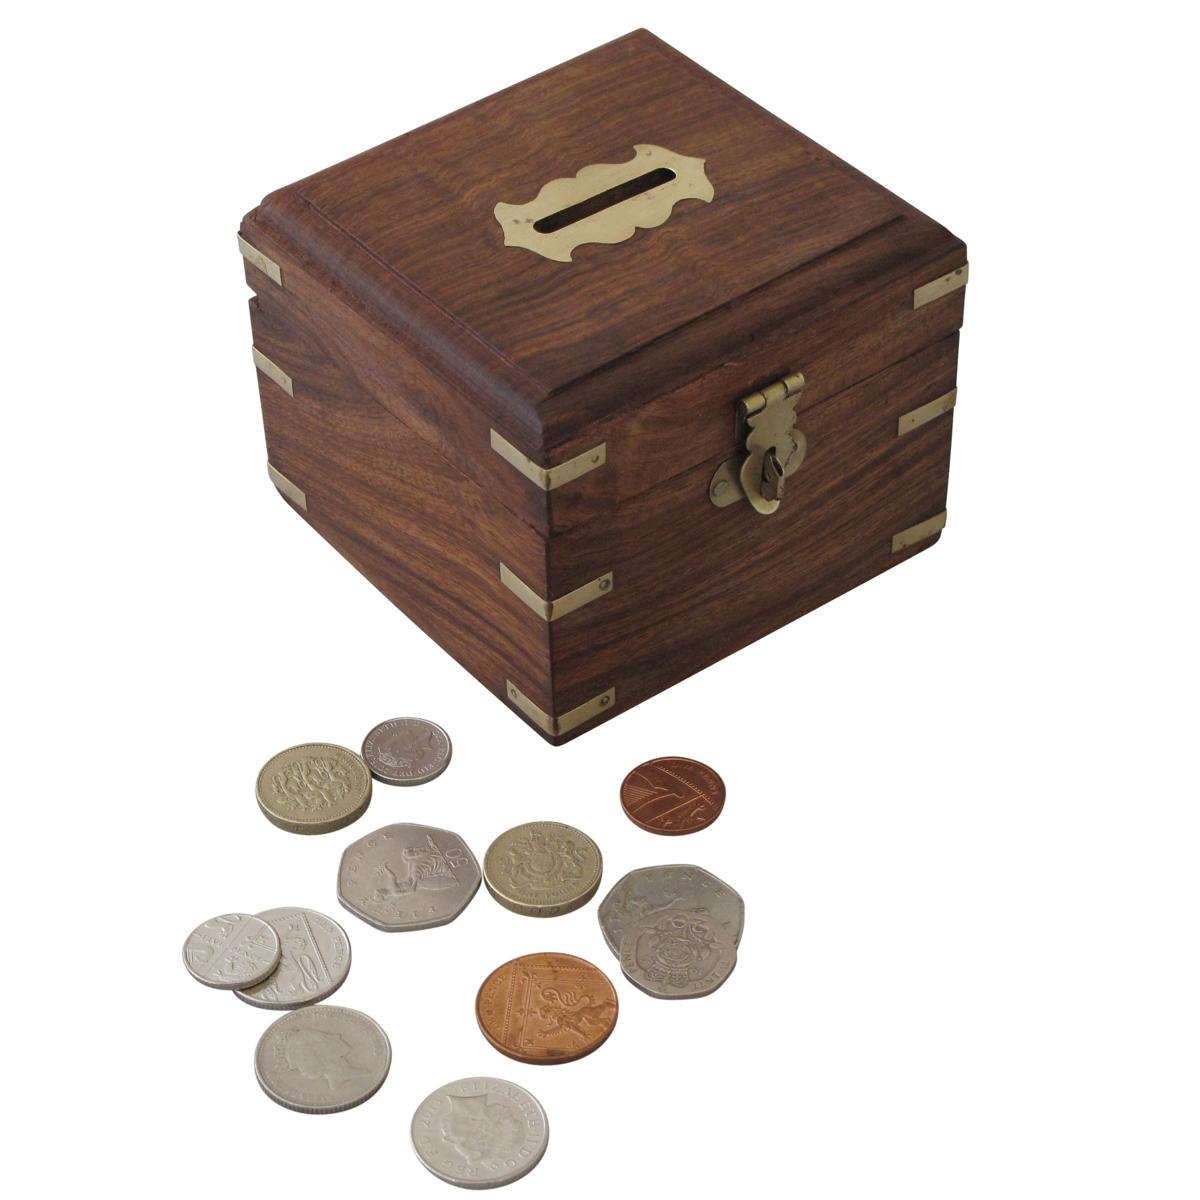 Sentinel Wooden Money Box with Brass Corners Handmade Treasure Chest Home Gift Lockable  sc 1 st  eBay & Wooden Money Box with Brass Corners Handmade Treasure Chest Home ... Aboutintivar.Com